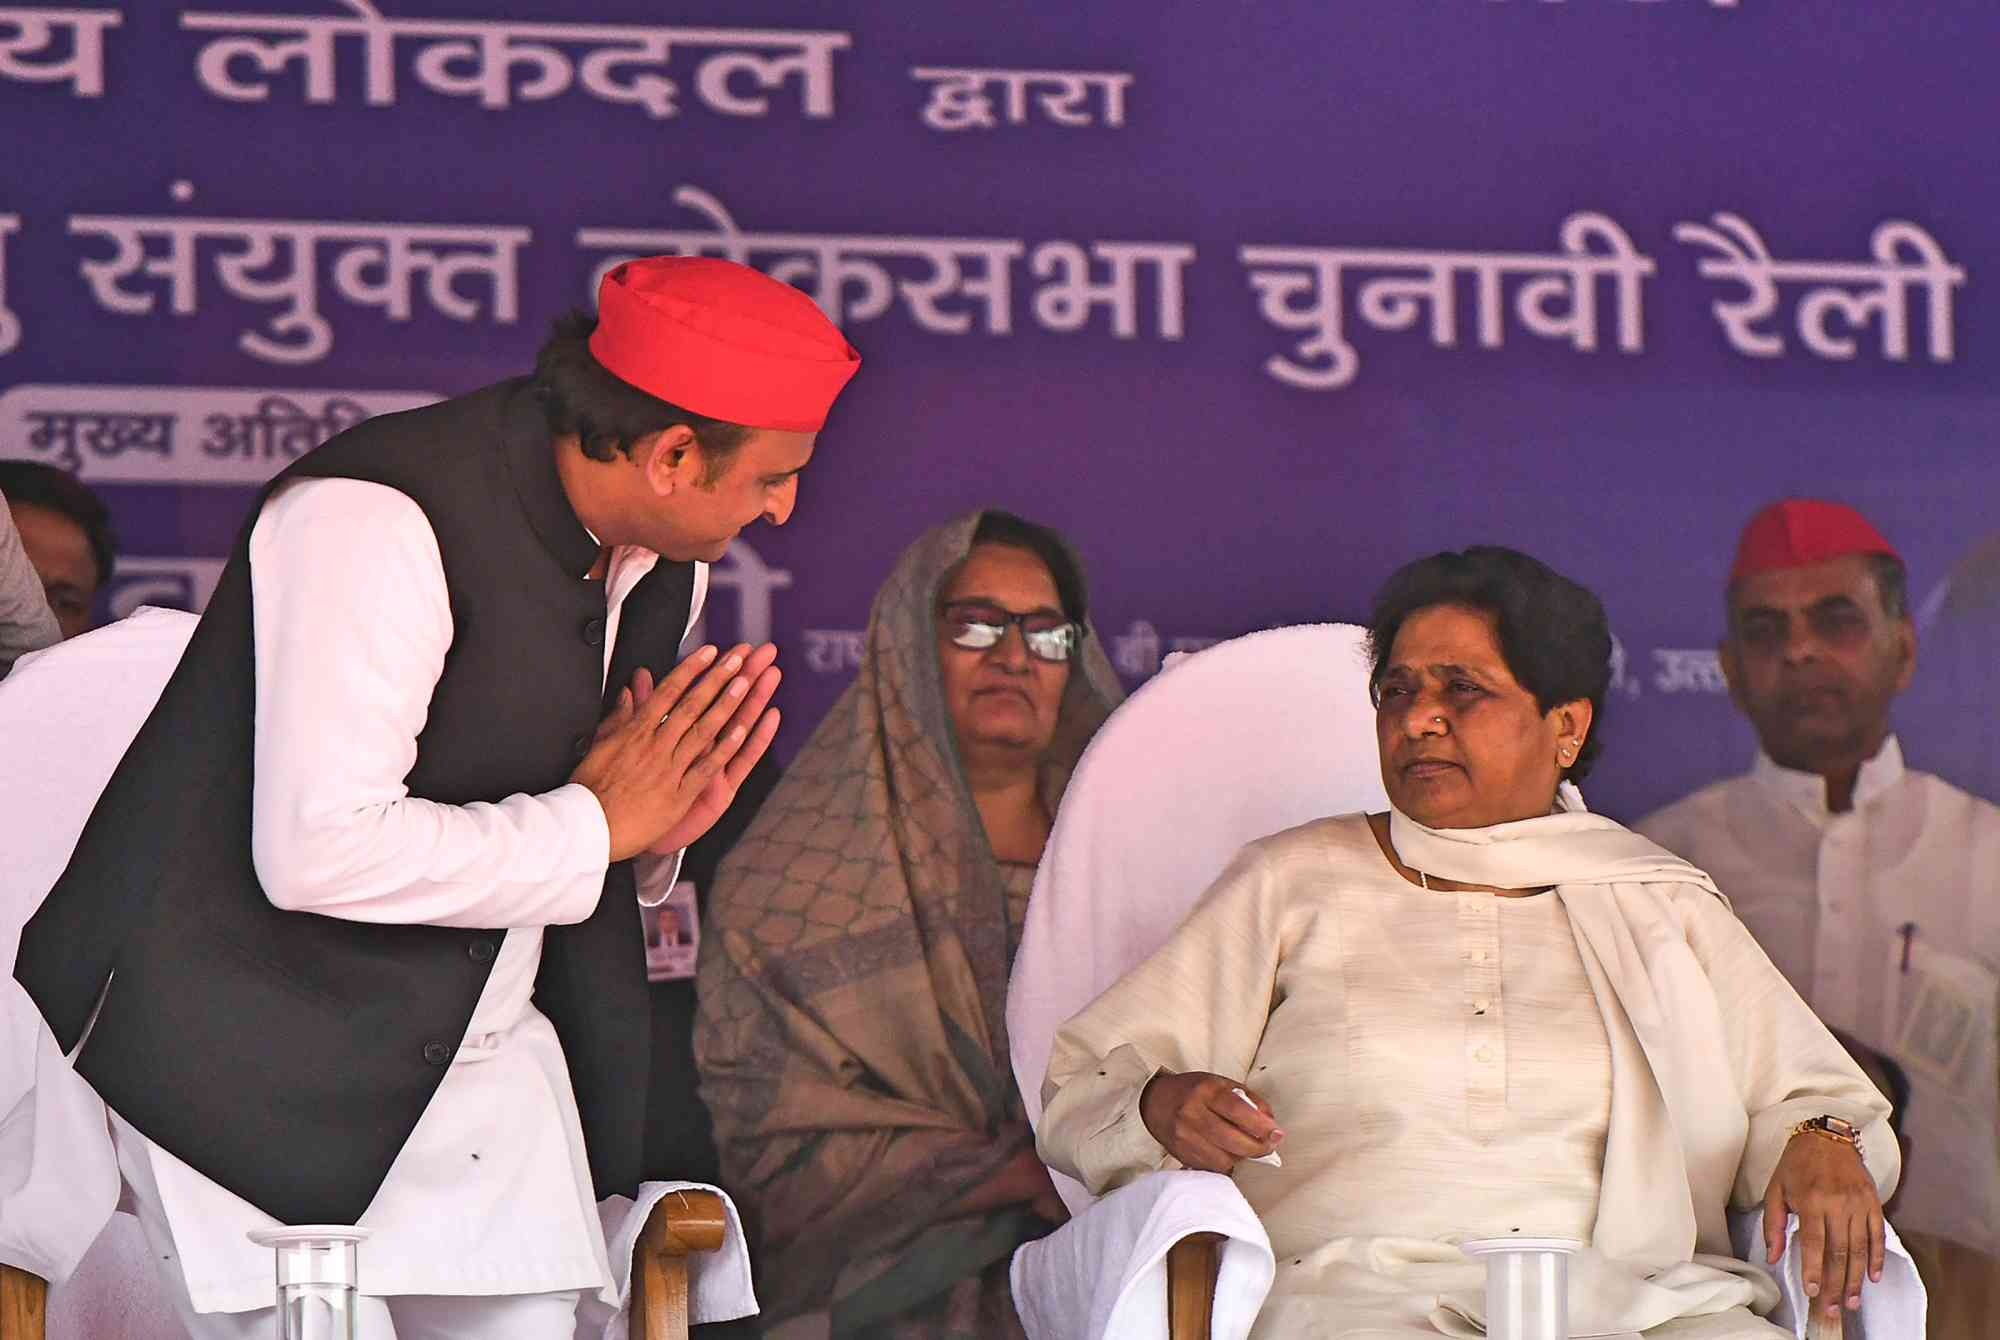 Samajwadi Party President Akhilesh Yadav With Bahujan Samaj Party President Mayawati In Deoband, Uttar Pradesh, On April 7, 2019. (Photo credit: Sanjay Kanojia/AFP).